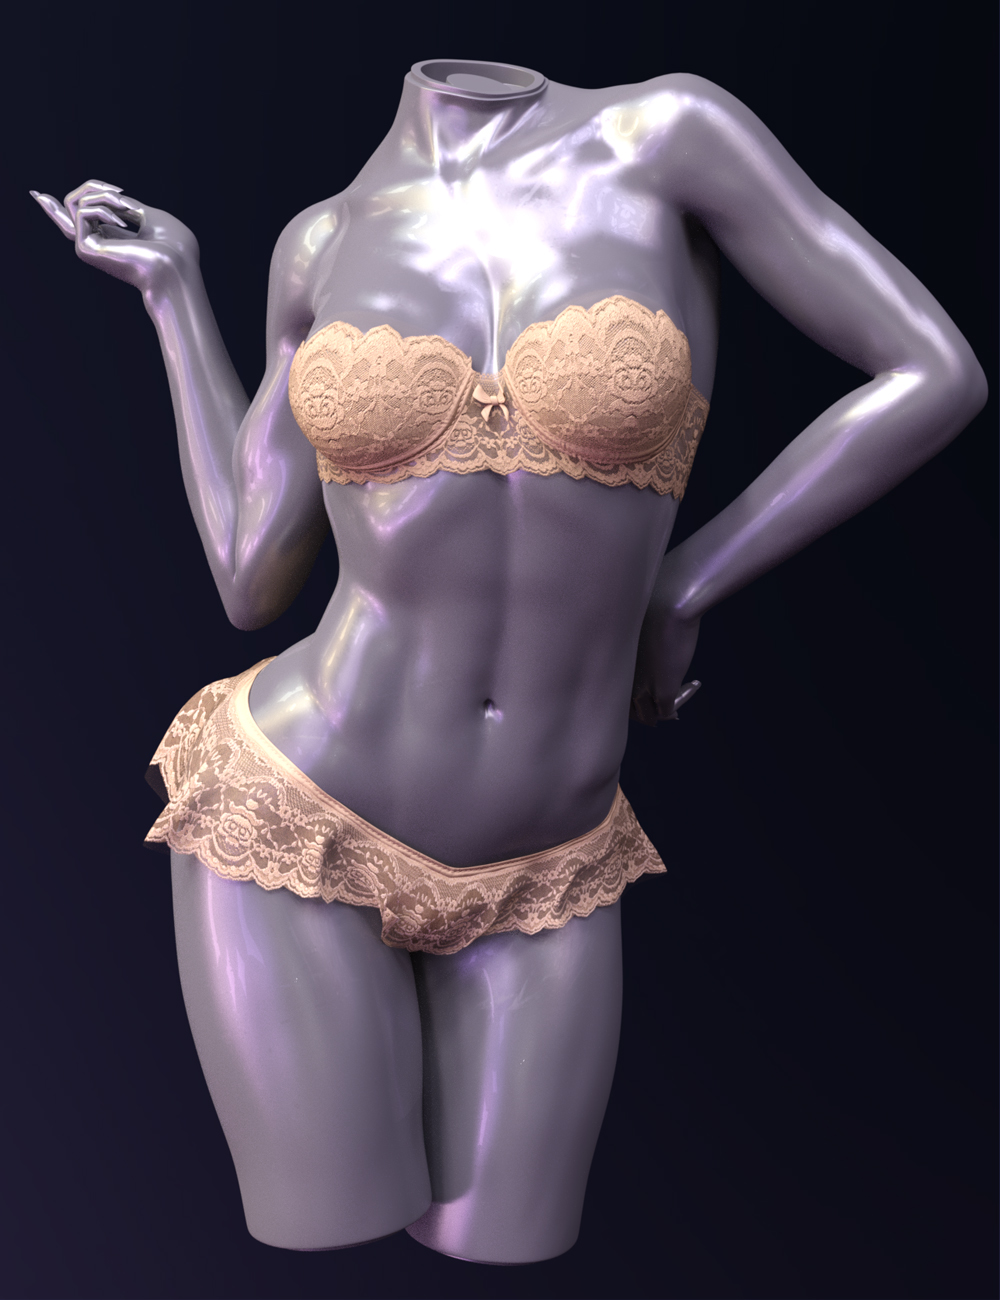 X-Fashion Sheer Lace Lingerie Genesis 8 Female by: xtrart-3d, 3D Models by Daz 3D